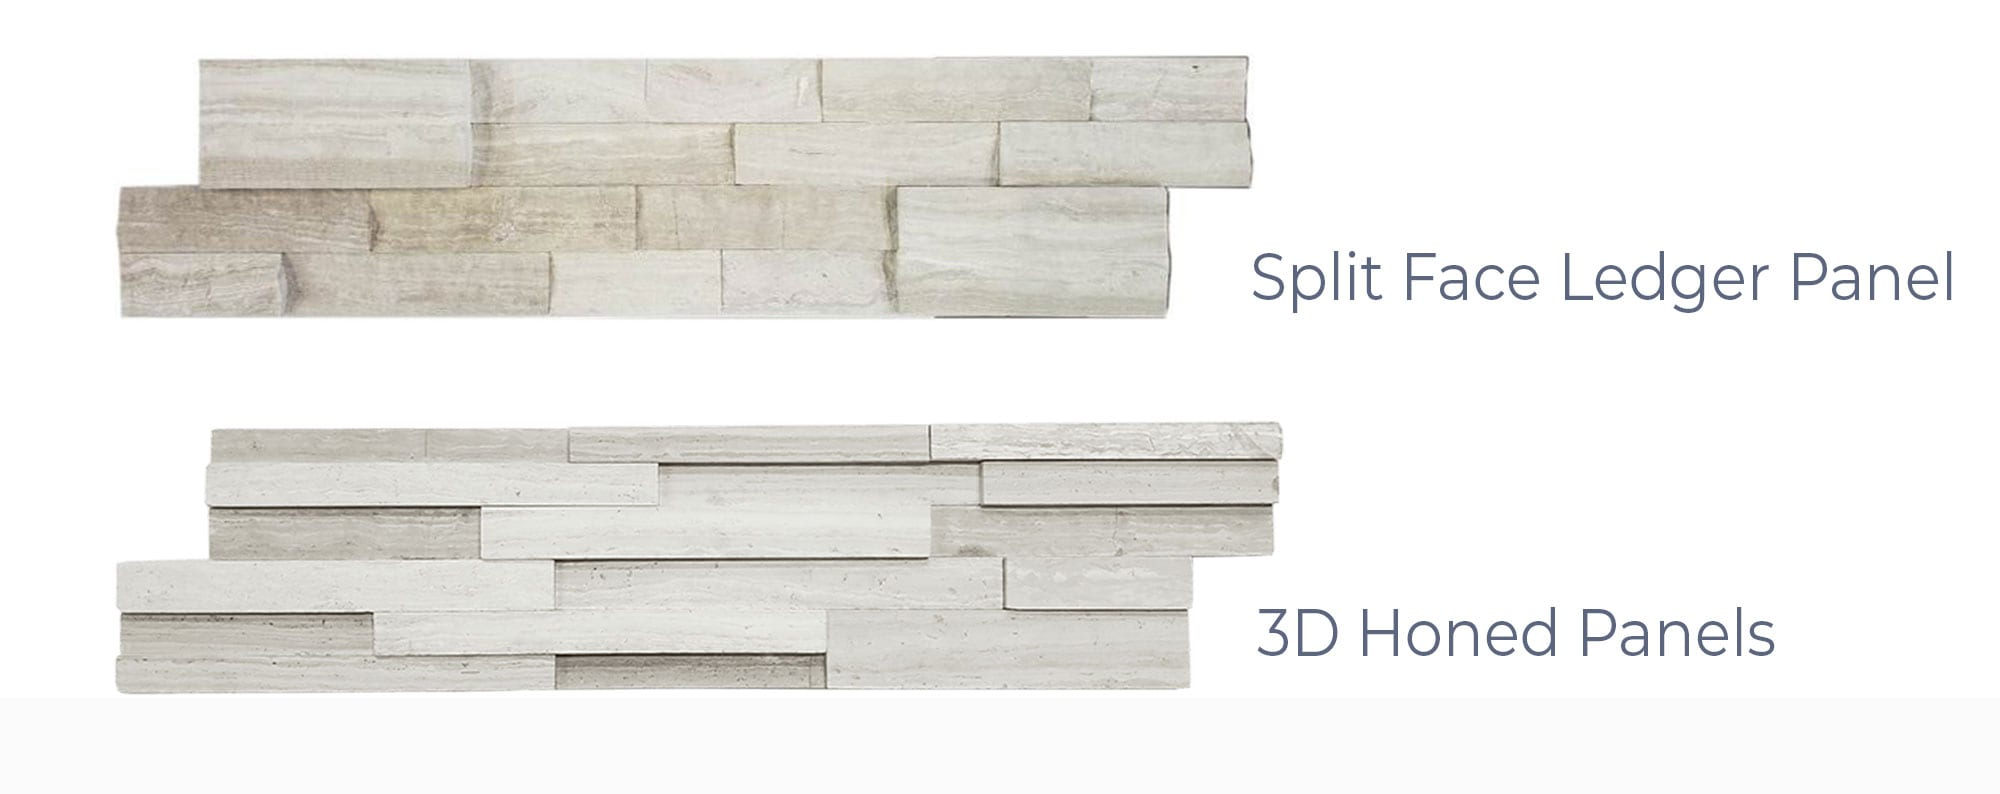 Stoneline-Group-White-Wood-Travertine-Marble-Collection-Marble-Veneer-3D-Honed-Split-Face-Panels-Pictures